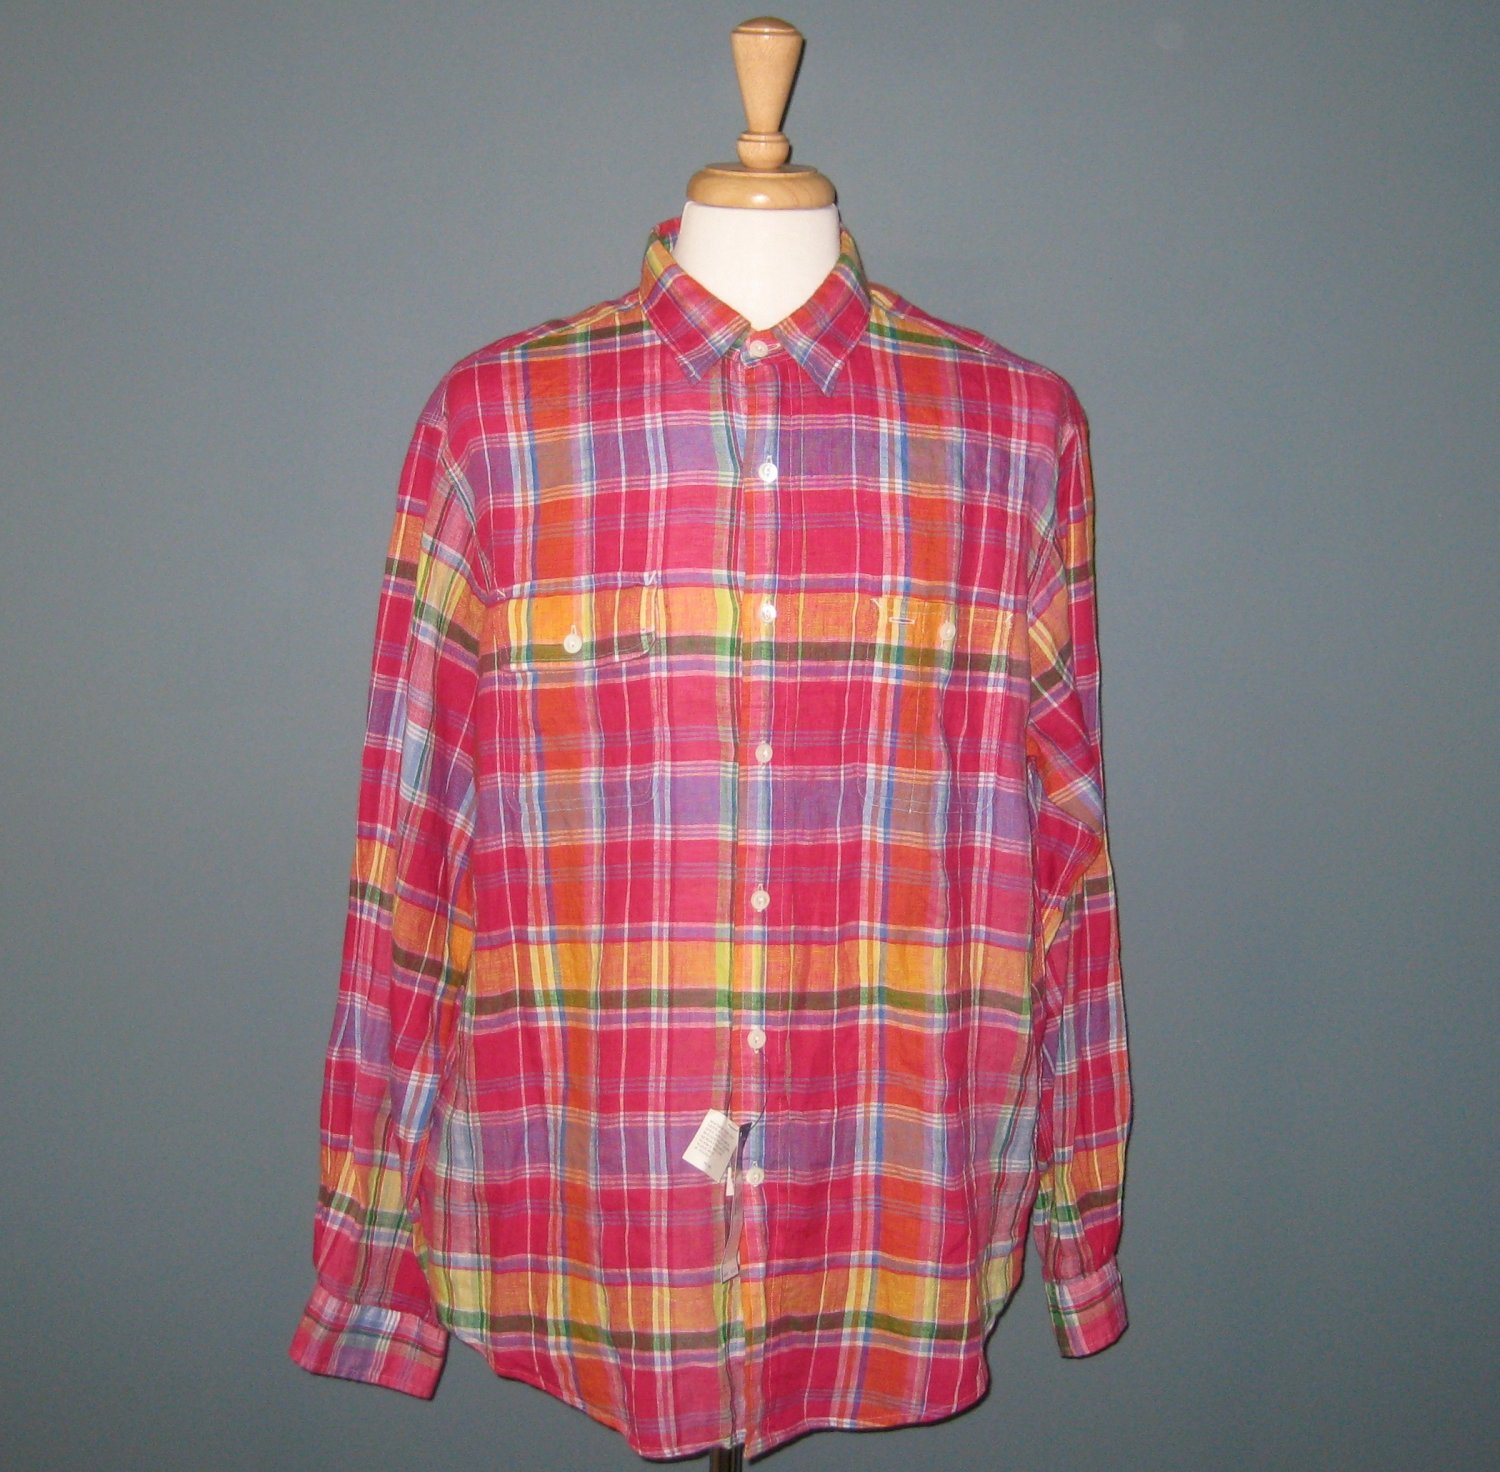 NWT Polo Ralph Lauren L/S 100% Washed Linen Ruby & Yellow Plaid Military Camp Shirt - XL